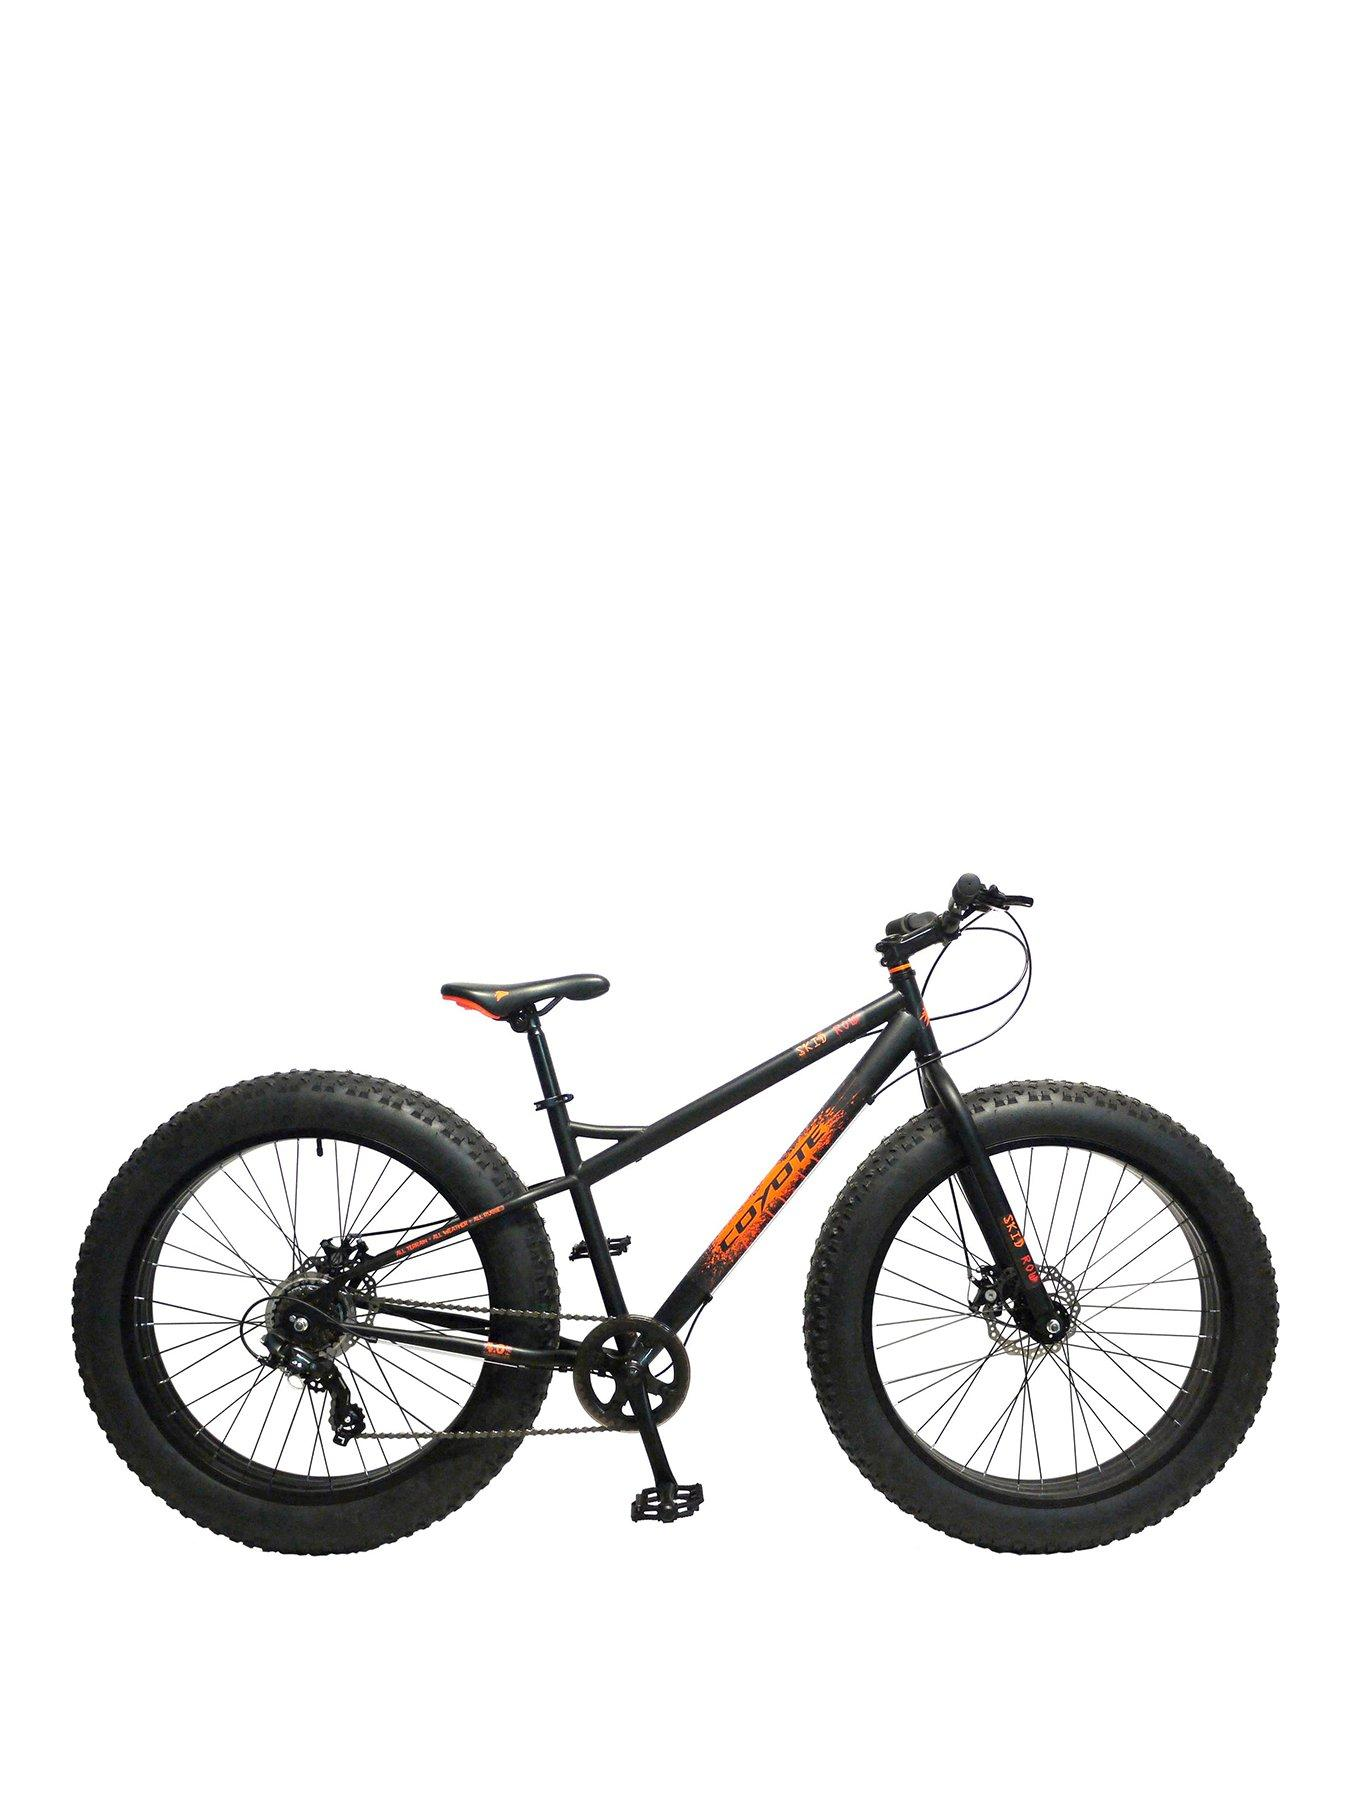 Compare prices for Coyote Skid Row Boys Bmx Bike 26 inch Wheel